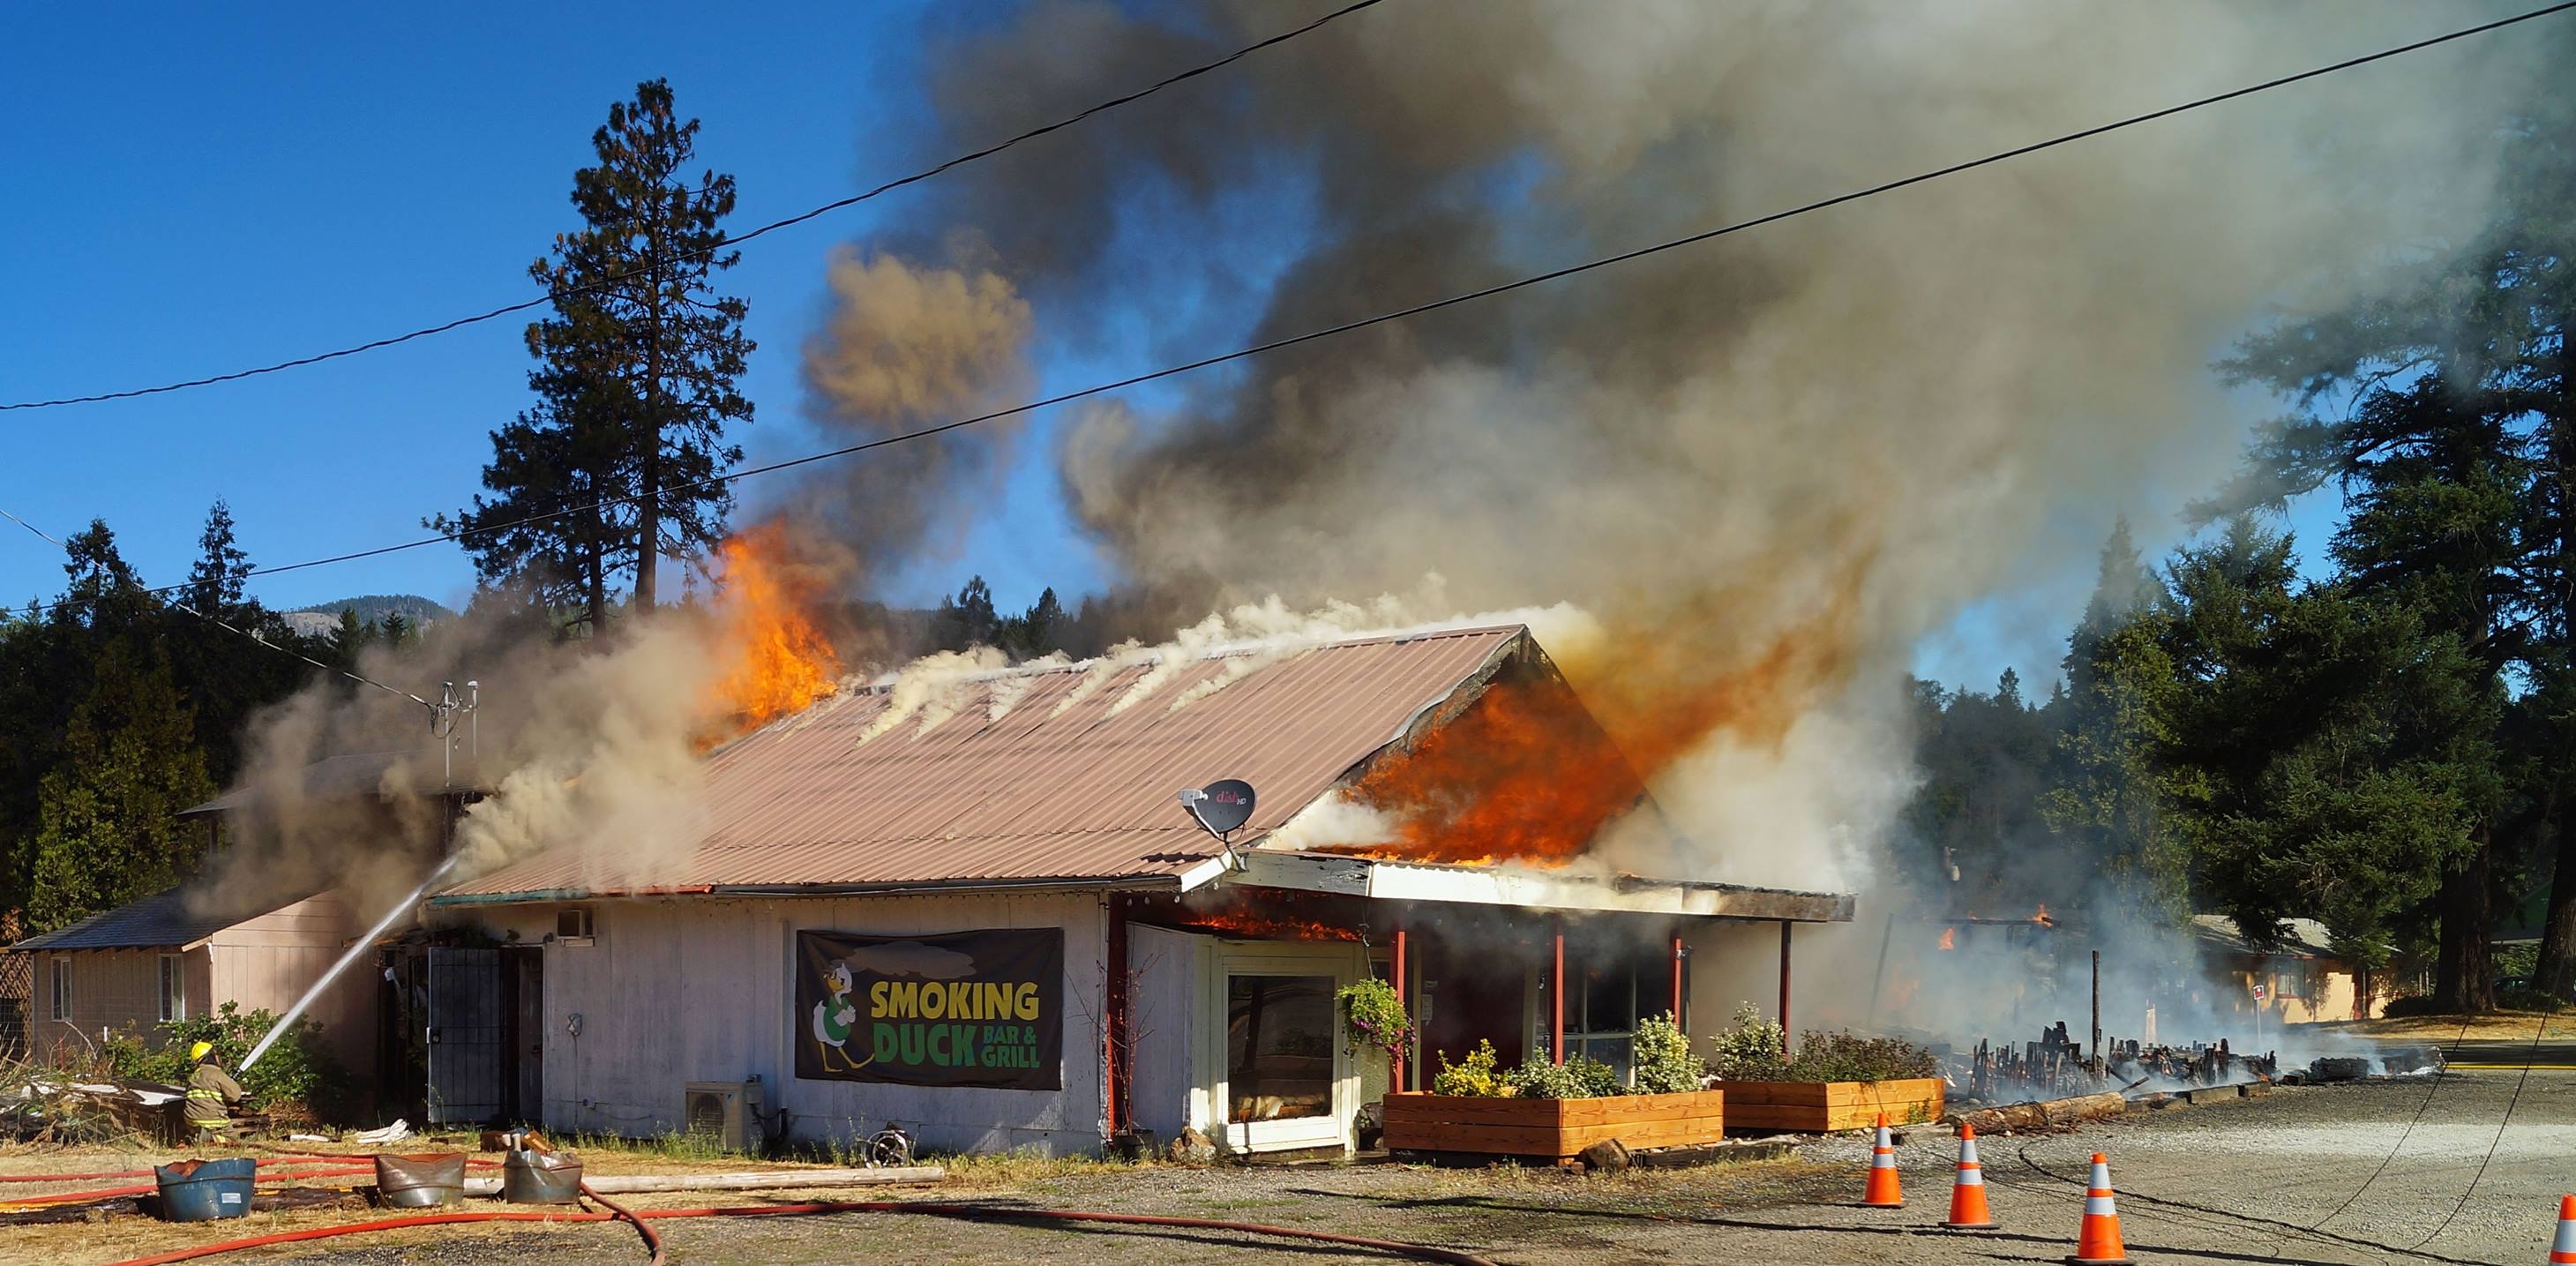 A Restaurant And Two Apartments Caught Fire In The Town Of Selma Oregon